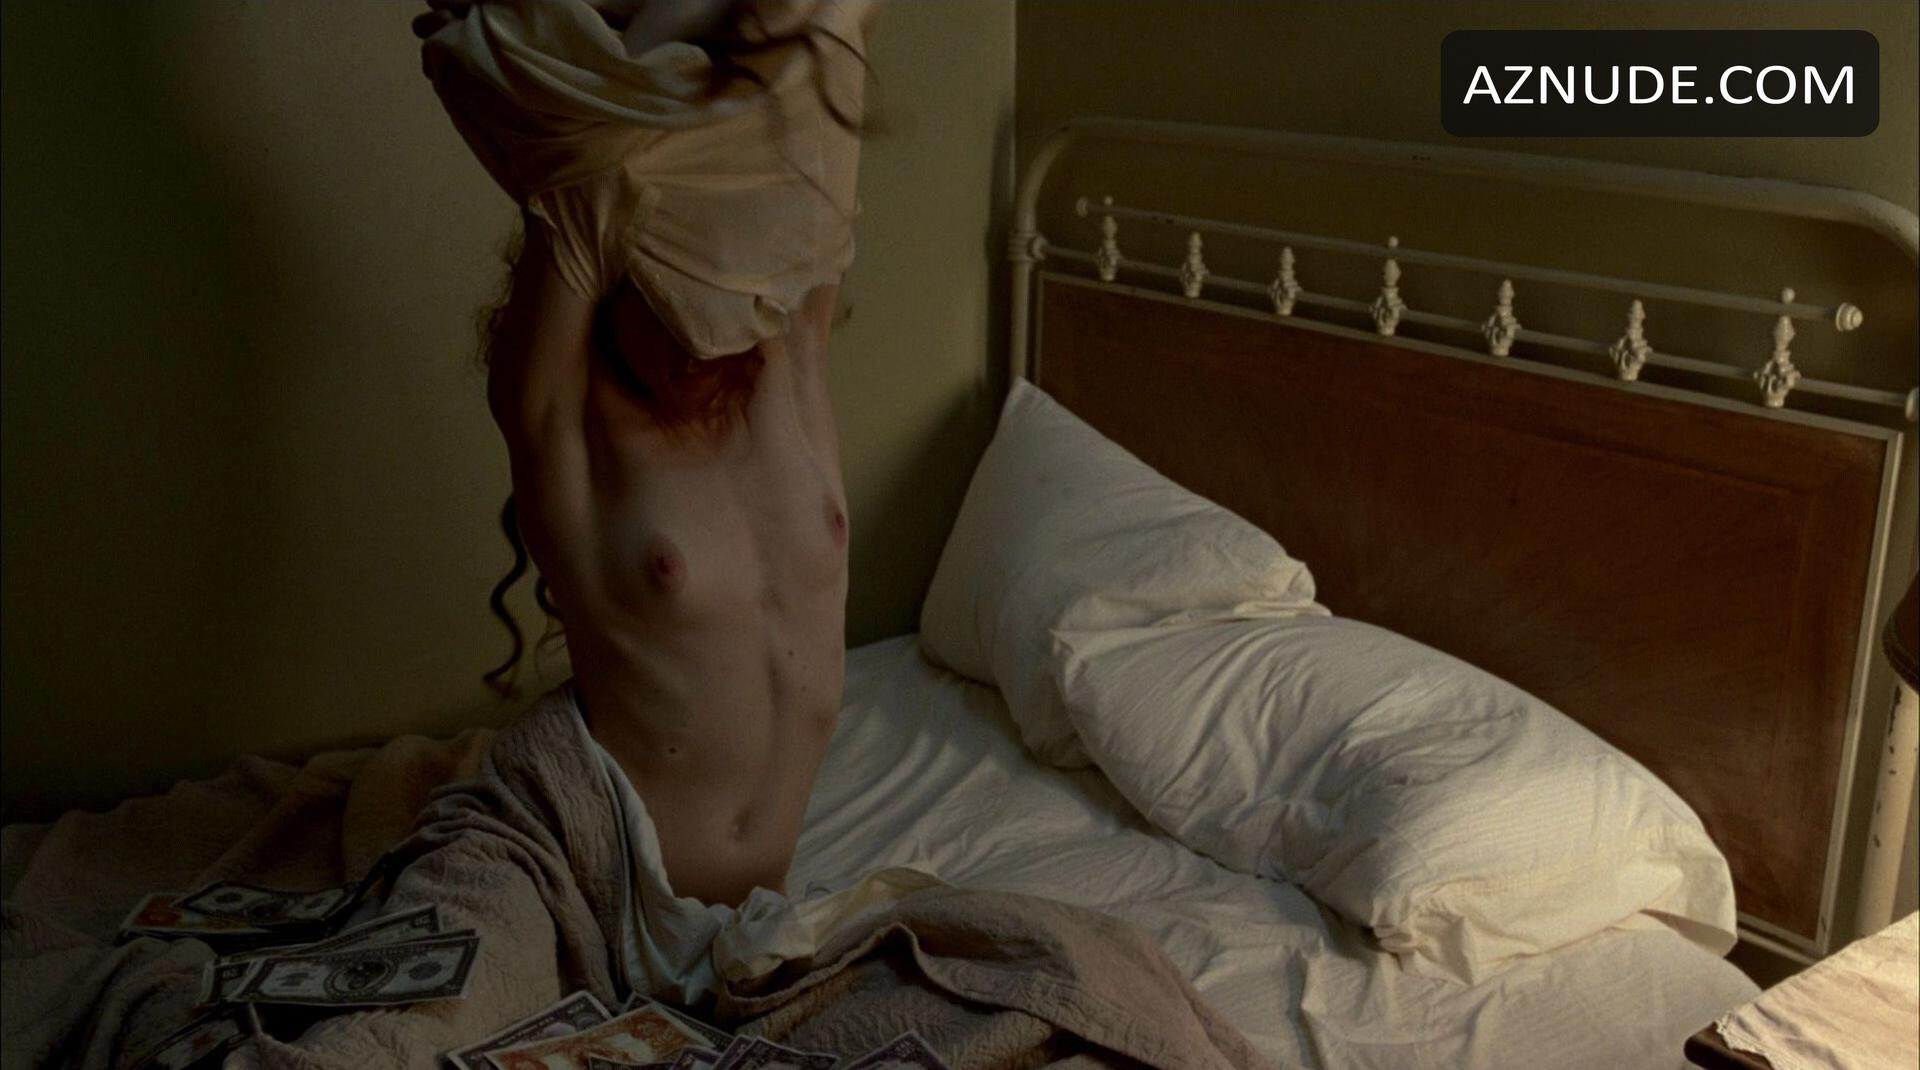 Gretchen mol erica fae bethany kay in boardwalk empire 2 - 3 part 2